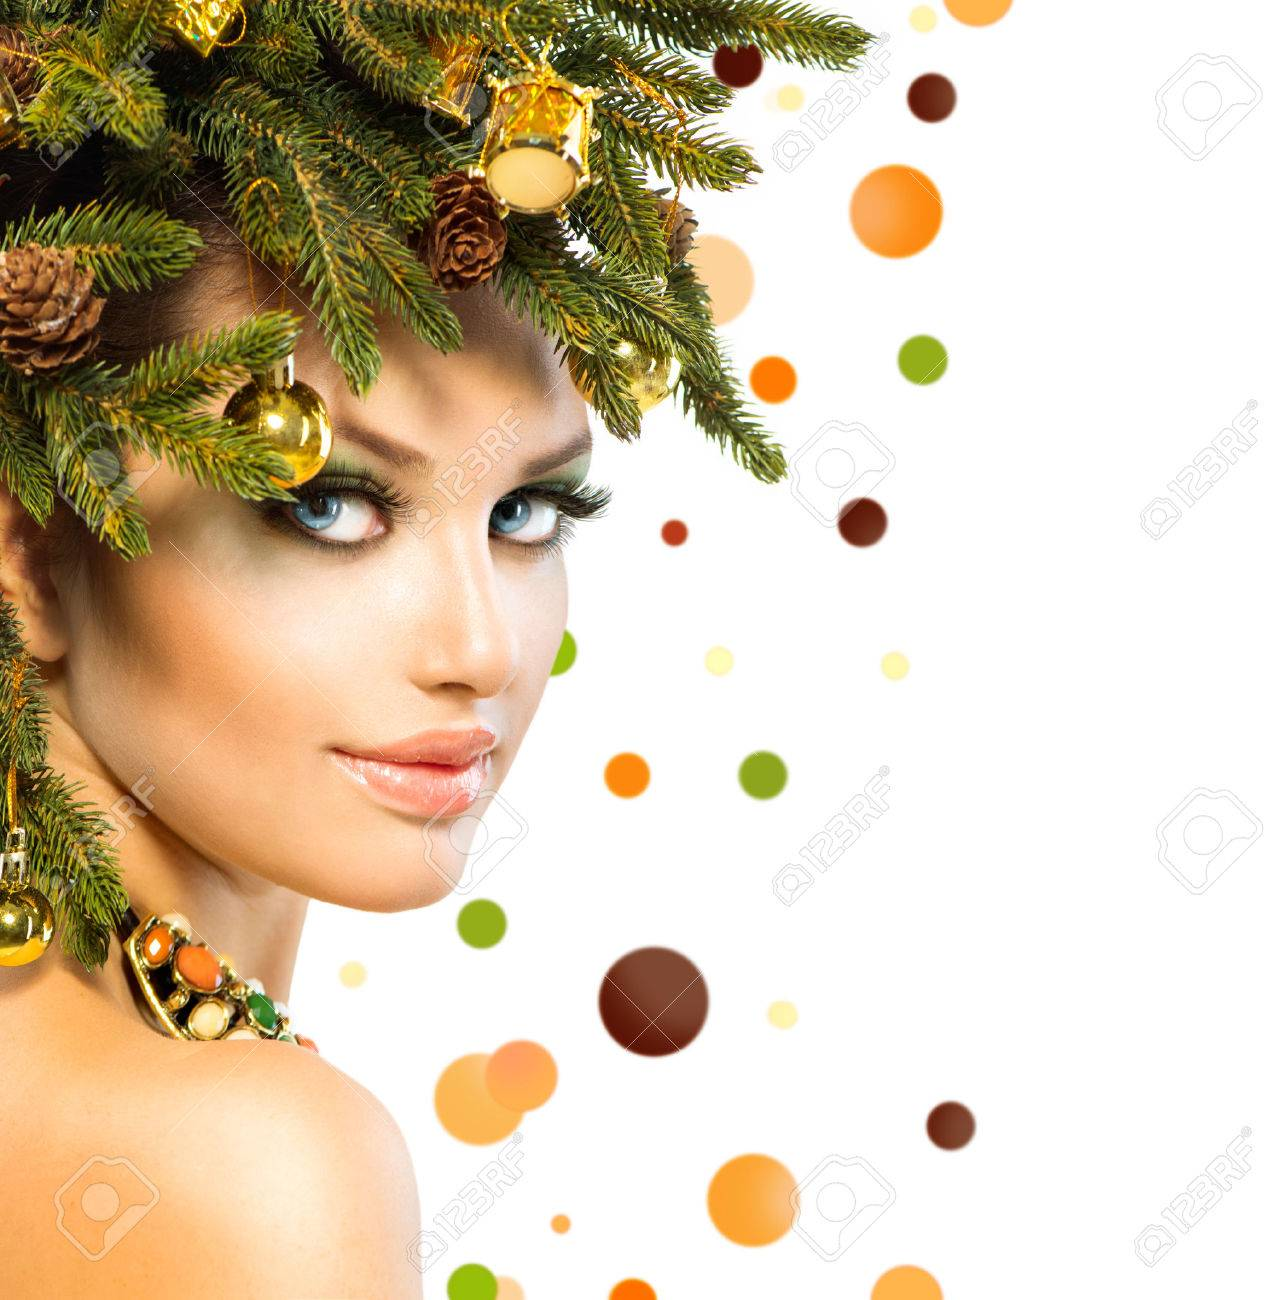 Christmas Woman  Winter Woman with Christmas Hairstyle Stock Photo - 23736100